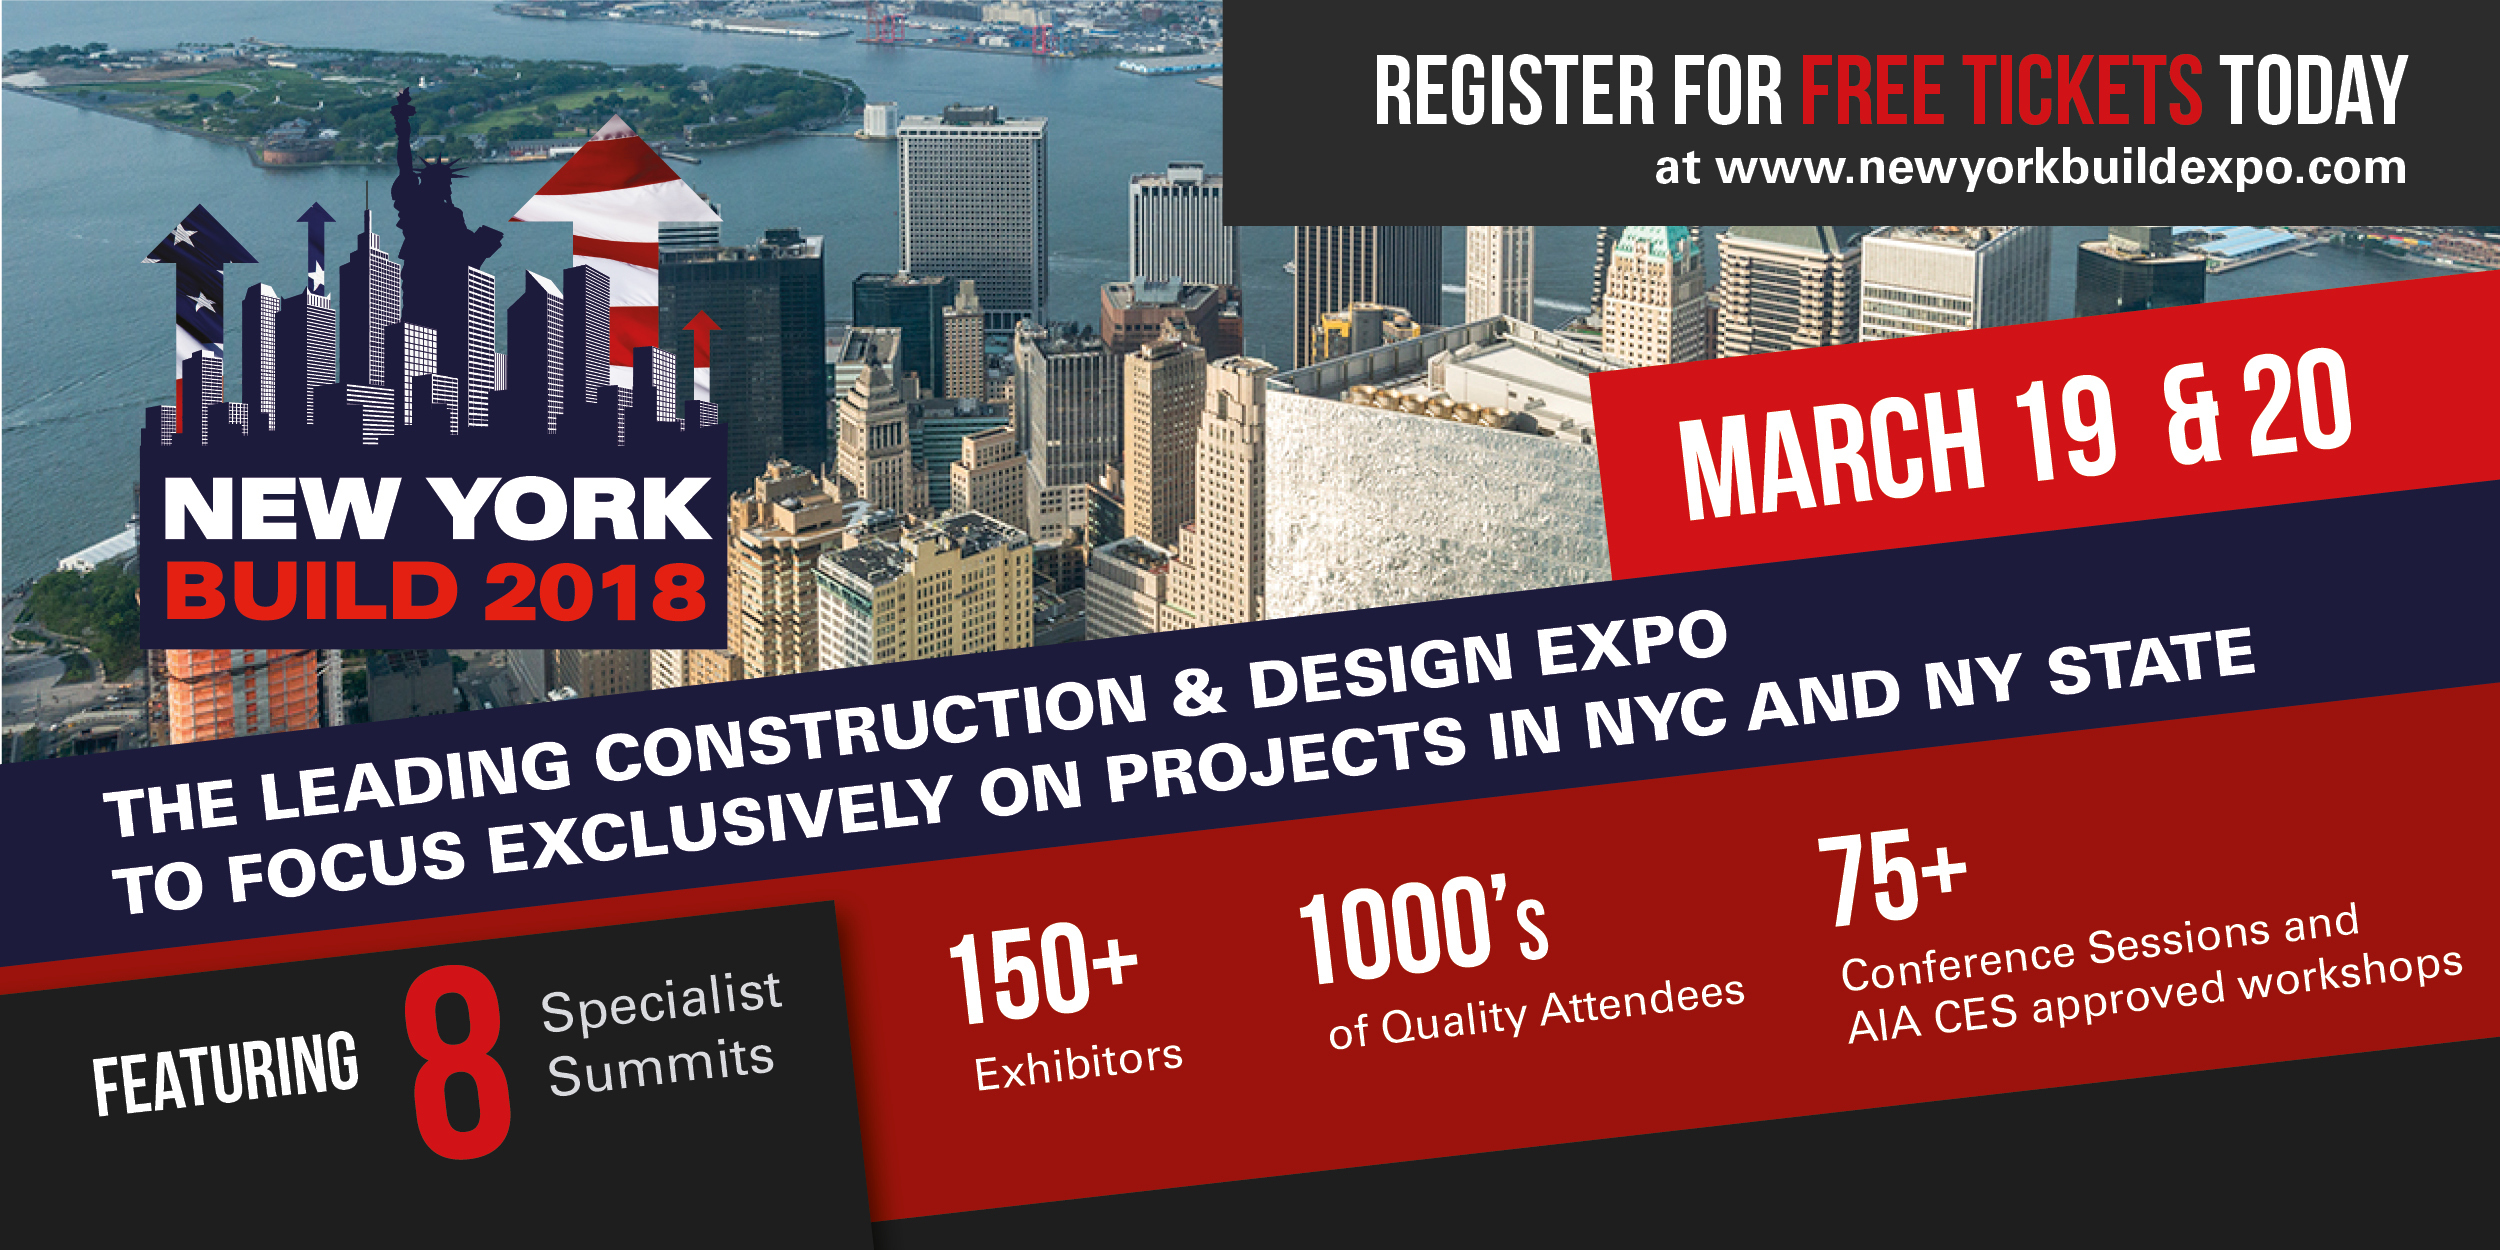 New York Build expo is taking place at the Javits Center on March 19 & 20.